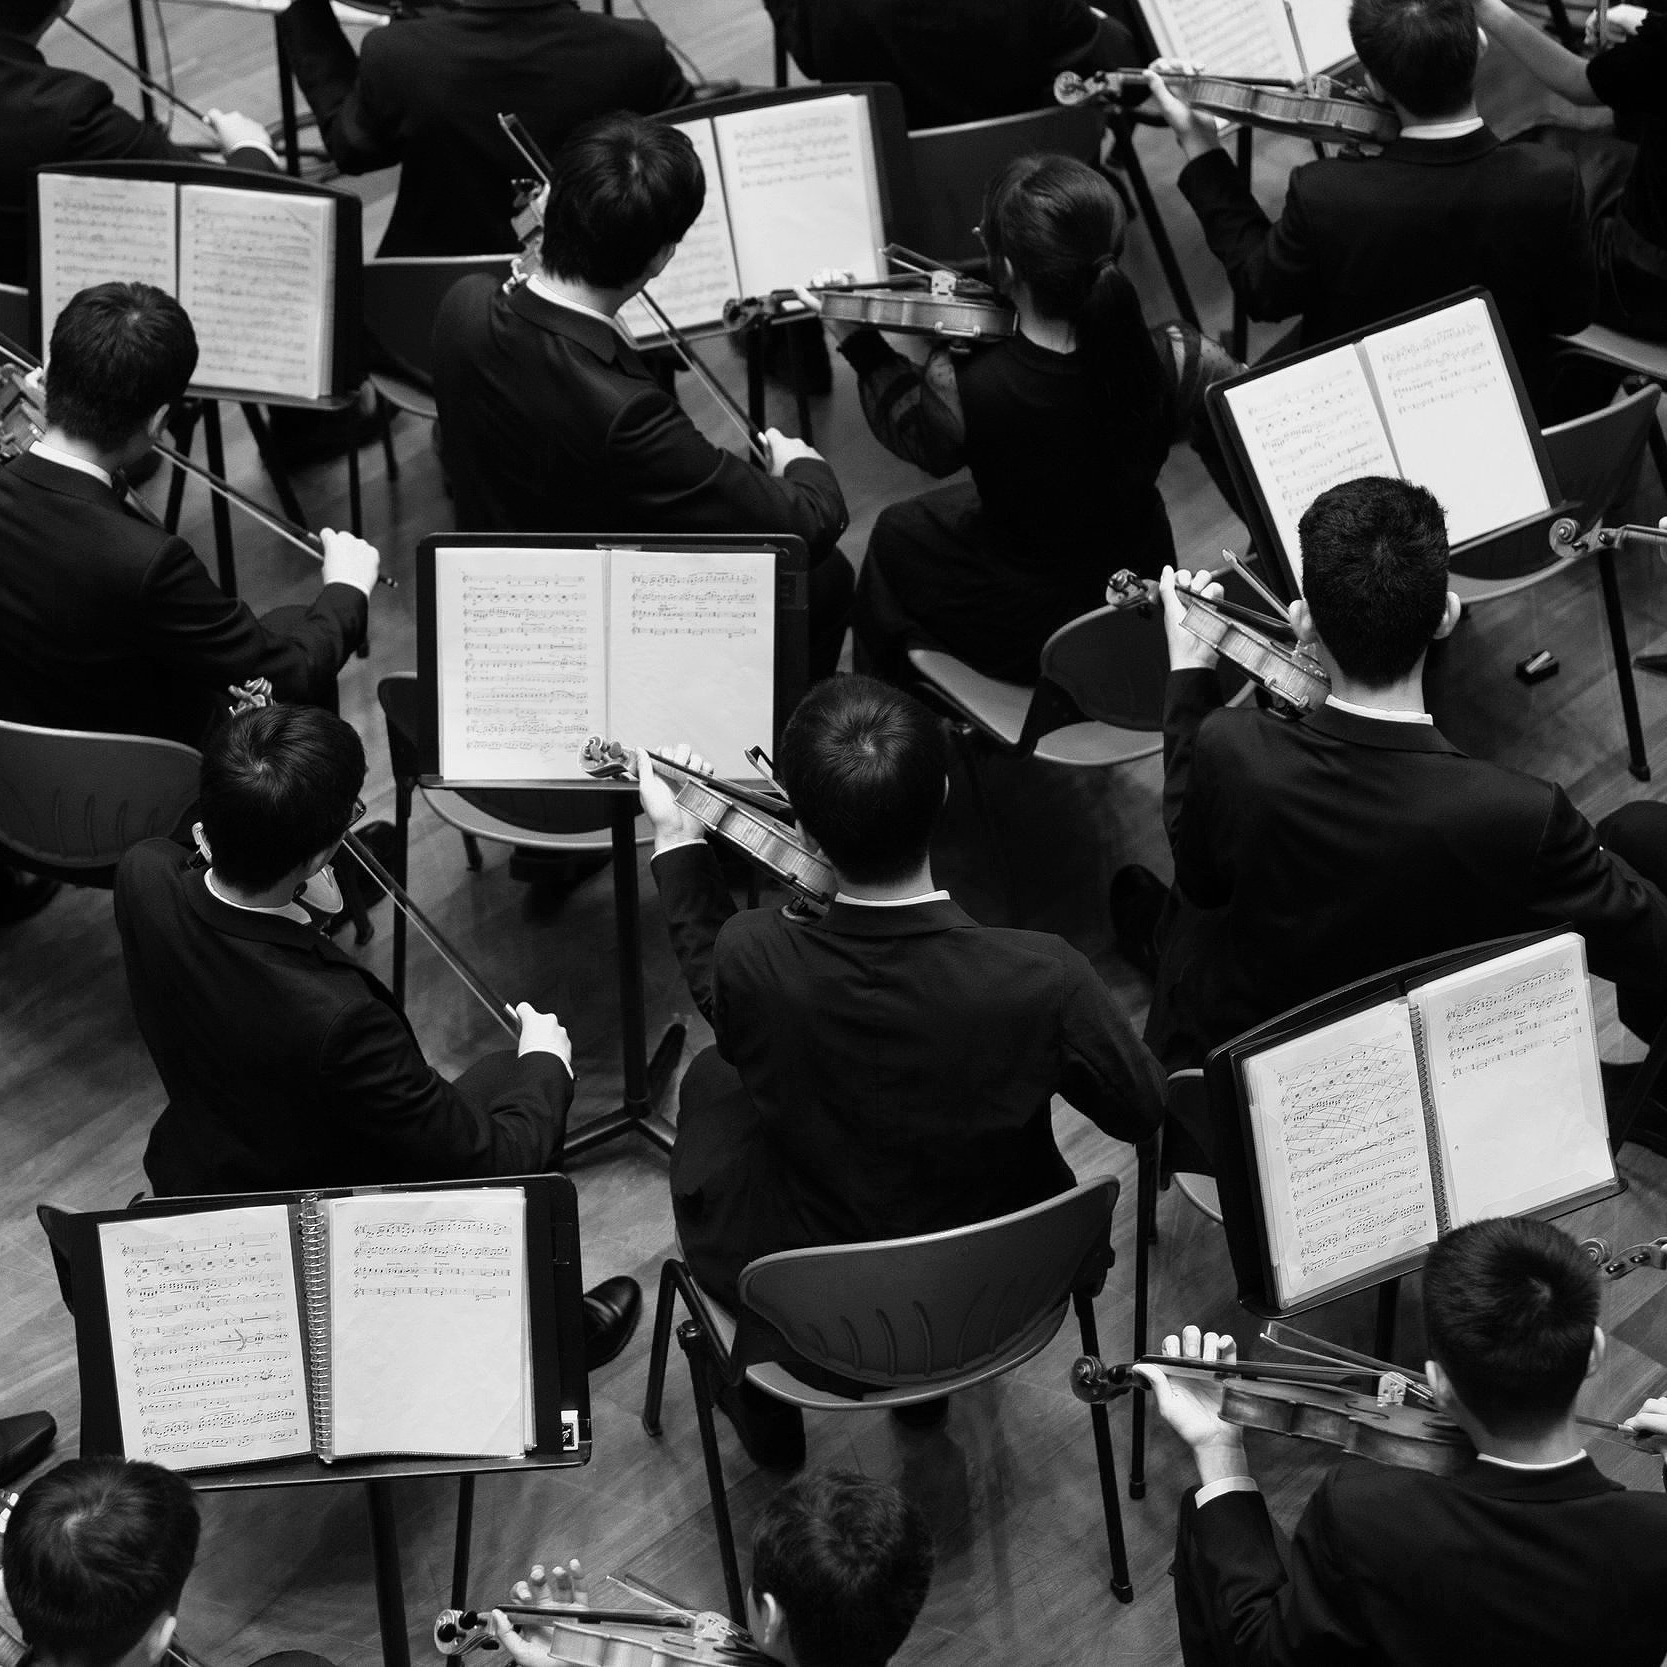 Auburn Symphony Presents: Pines of Rome - Kent Reporter // 10.3.18Auburn Symphony's new music director Wesley Schulz begins his tenure with the orchestra with the fall concert, Pines of Rome.